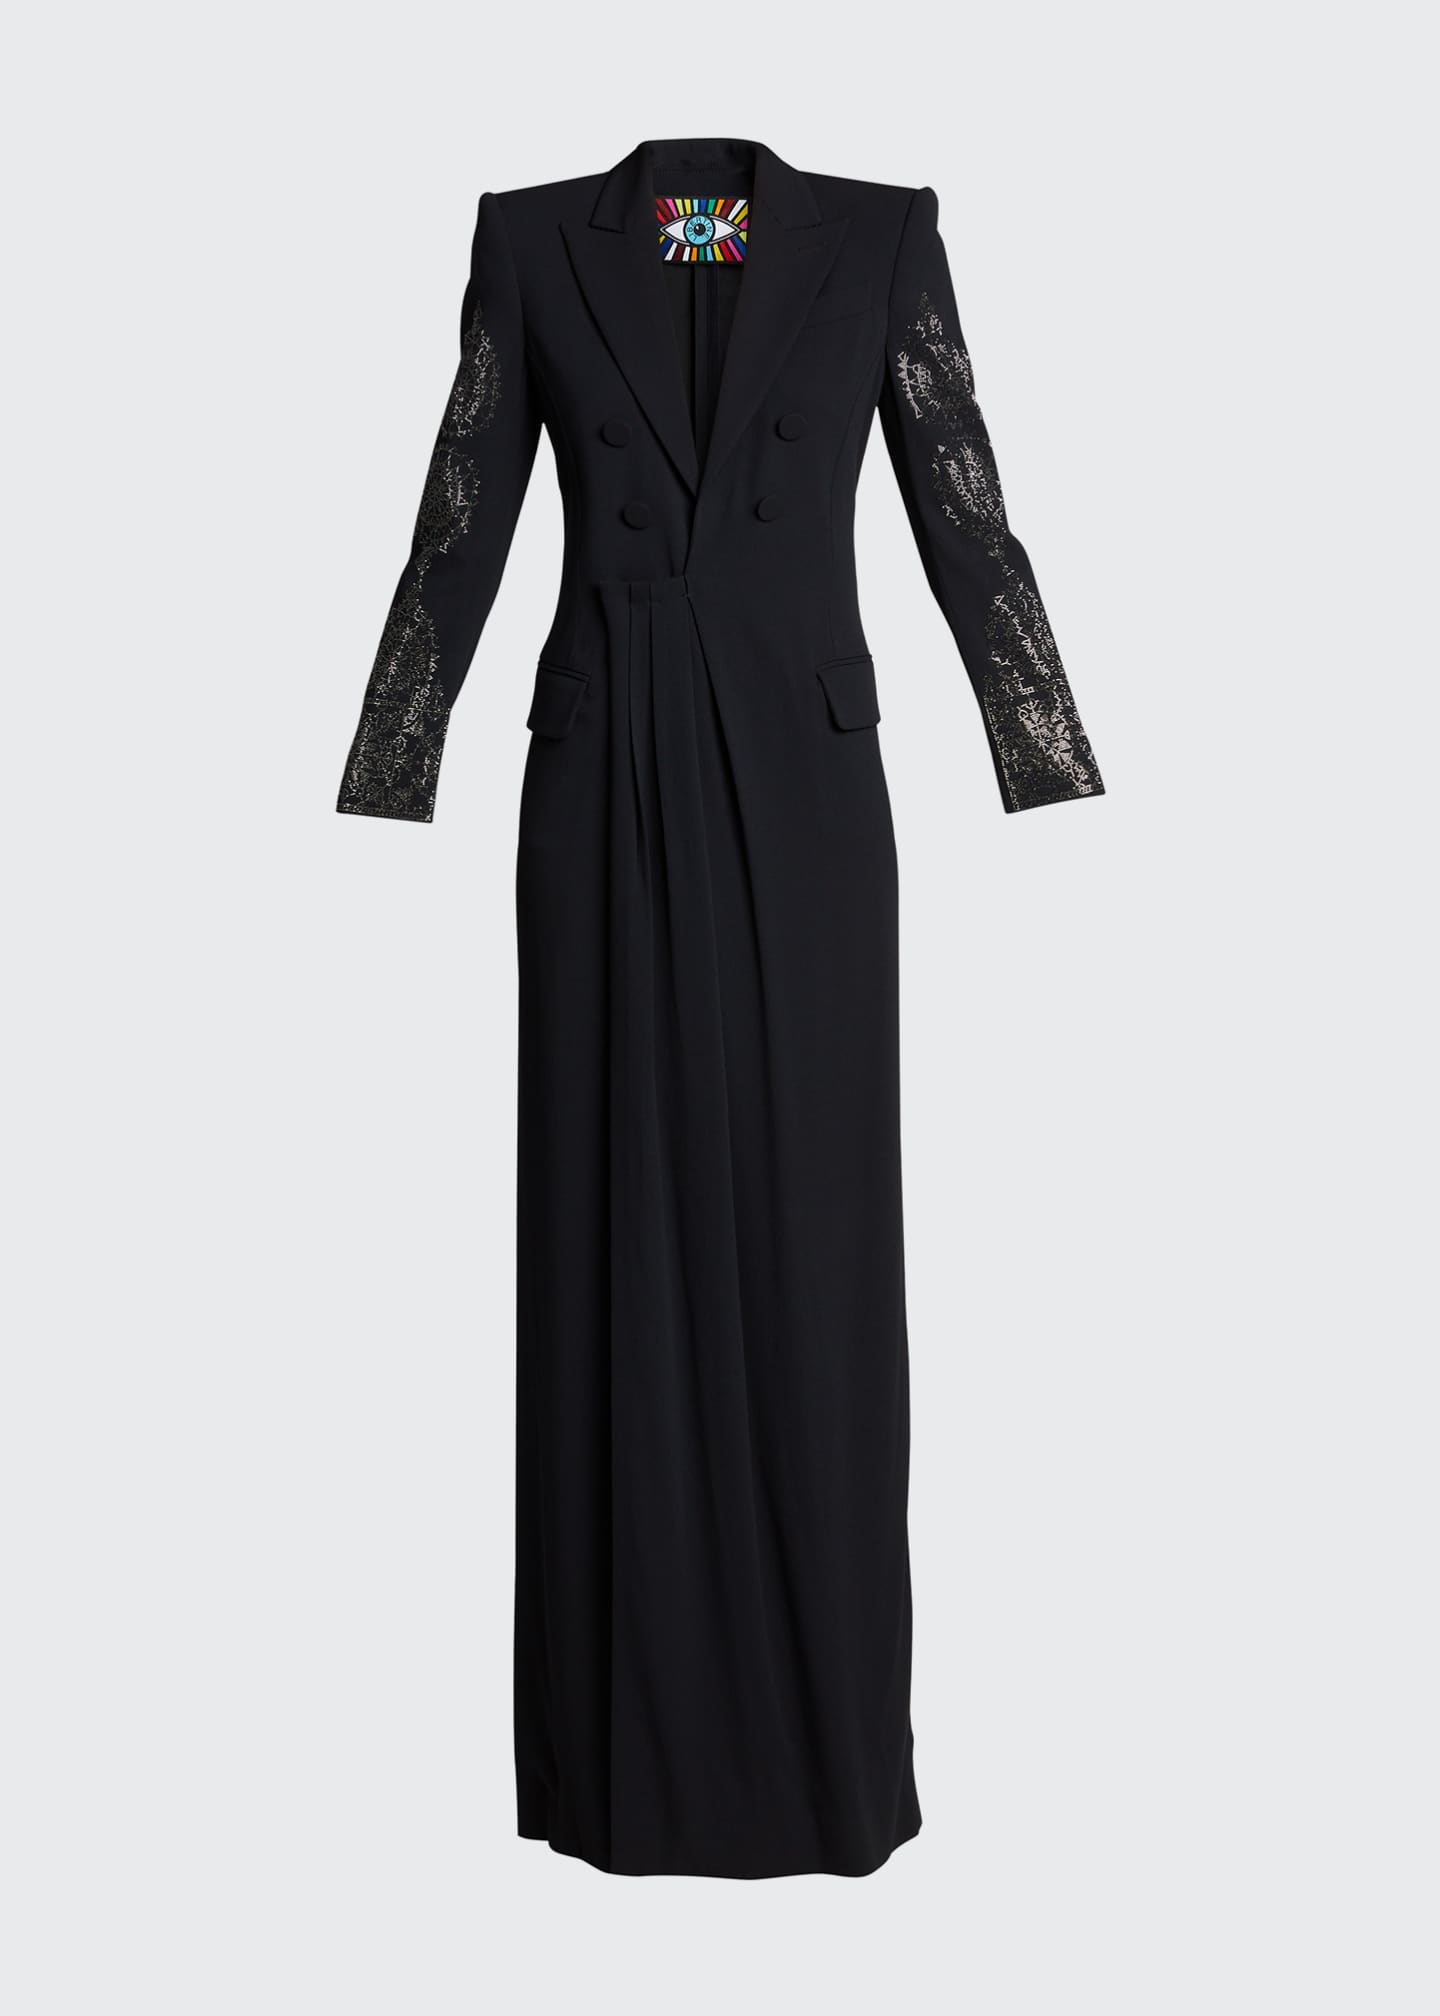 Image 5 of 5: Vintage Gothic Spire Embellished Dress